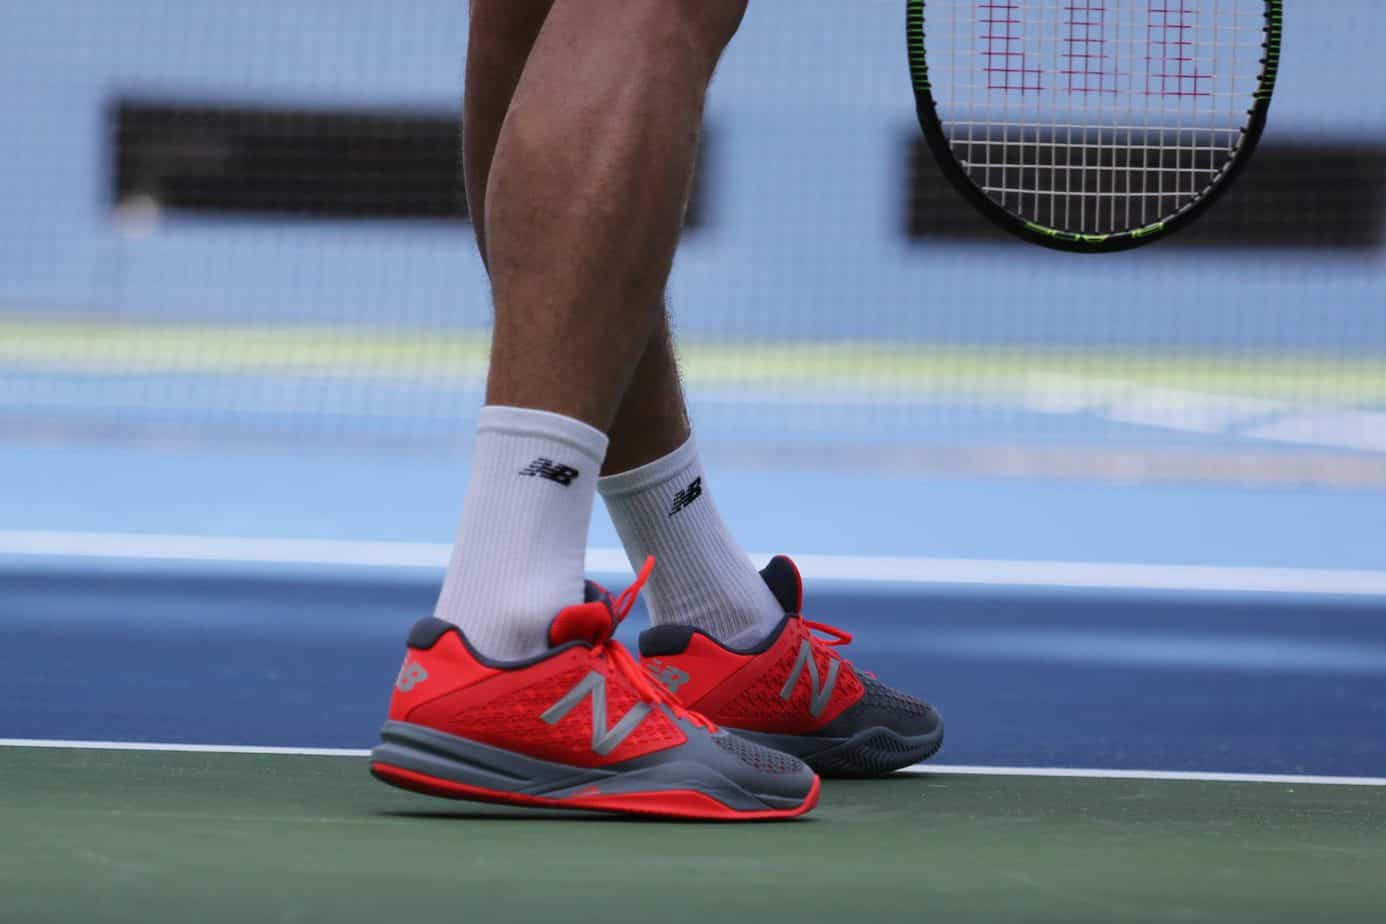 5 Best New Balance Tennis Shoes (2021) | A Complete Guide